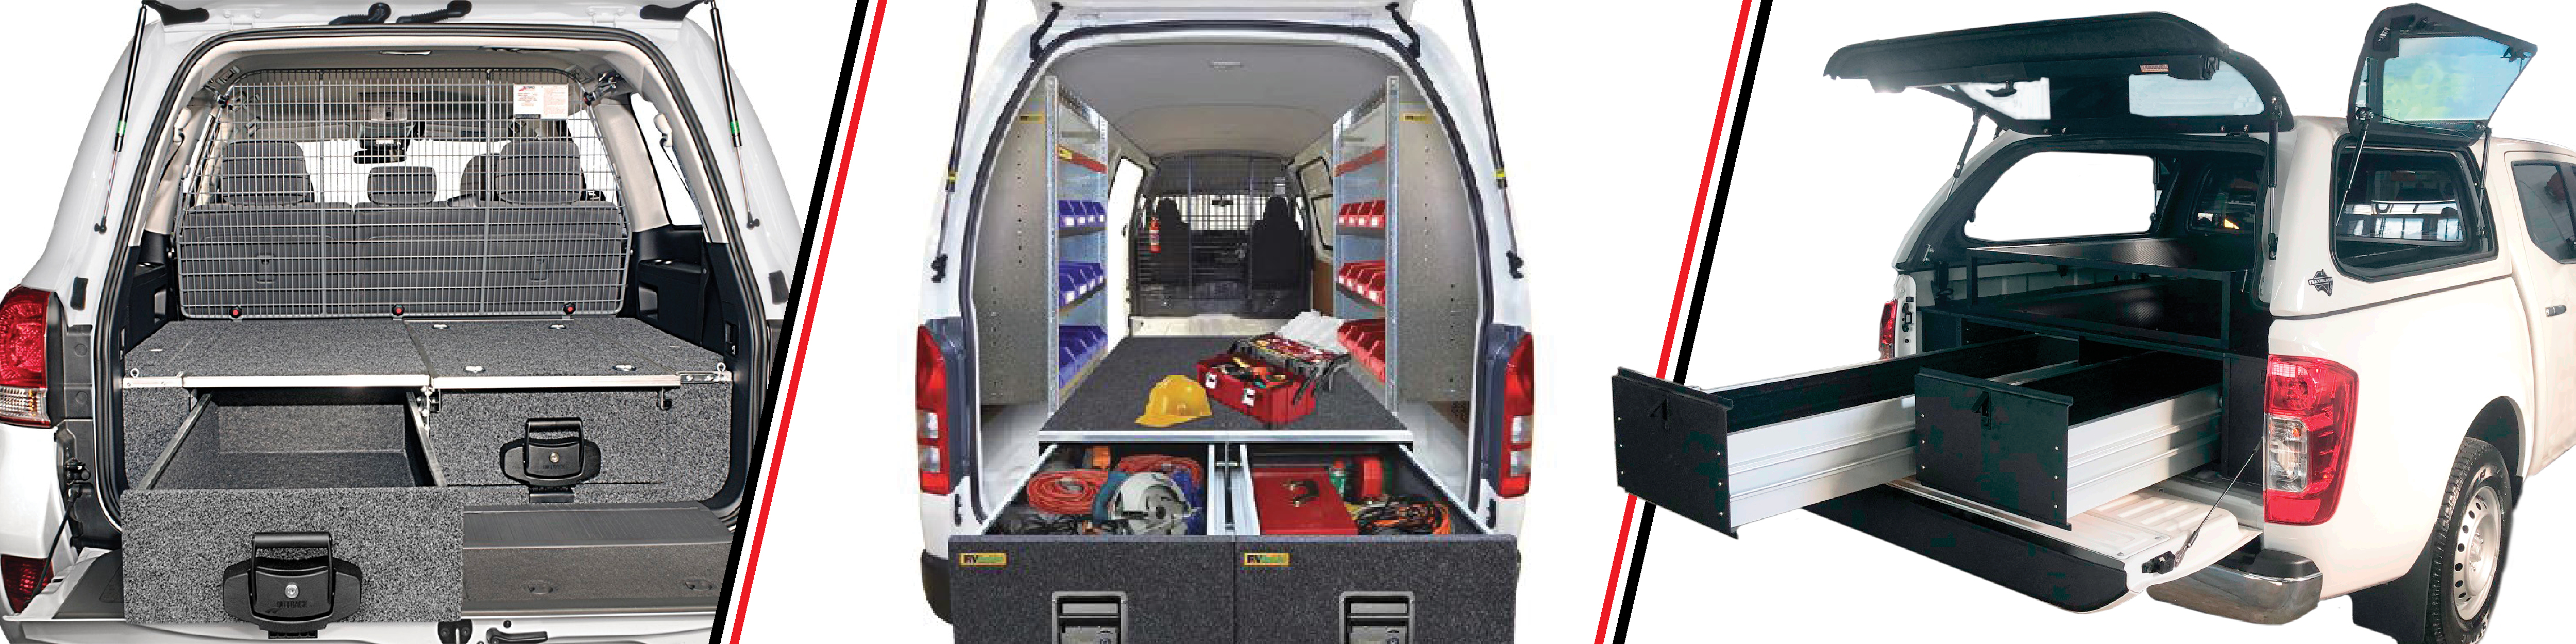 RFM 4x4 199 Logan Road Woolloongabba Image Drawer Systems - RFM4x4 Drawer-Systems-1 - Recreation Fleet and Mining